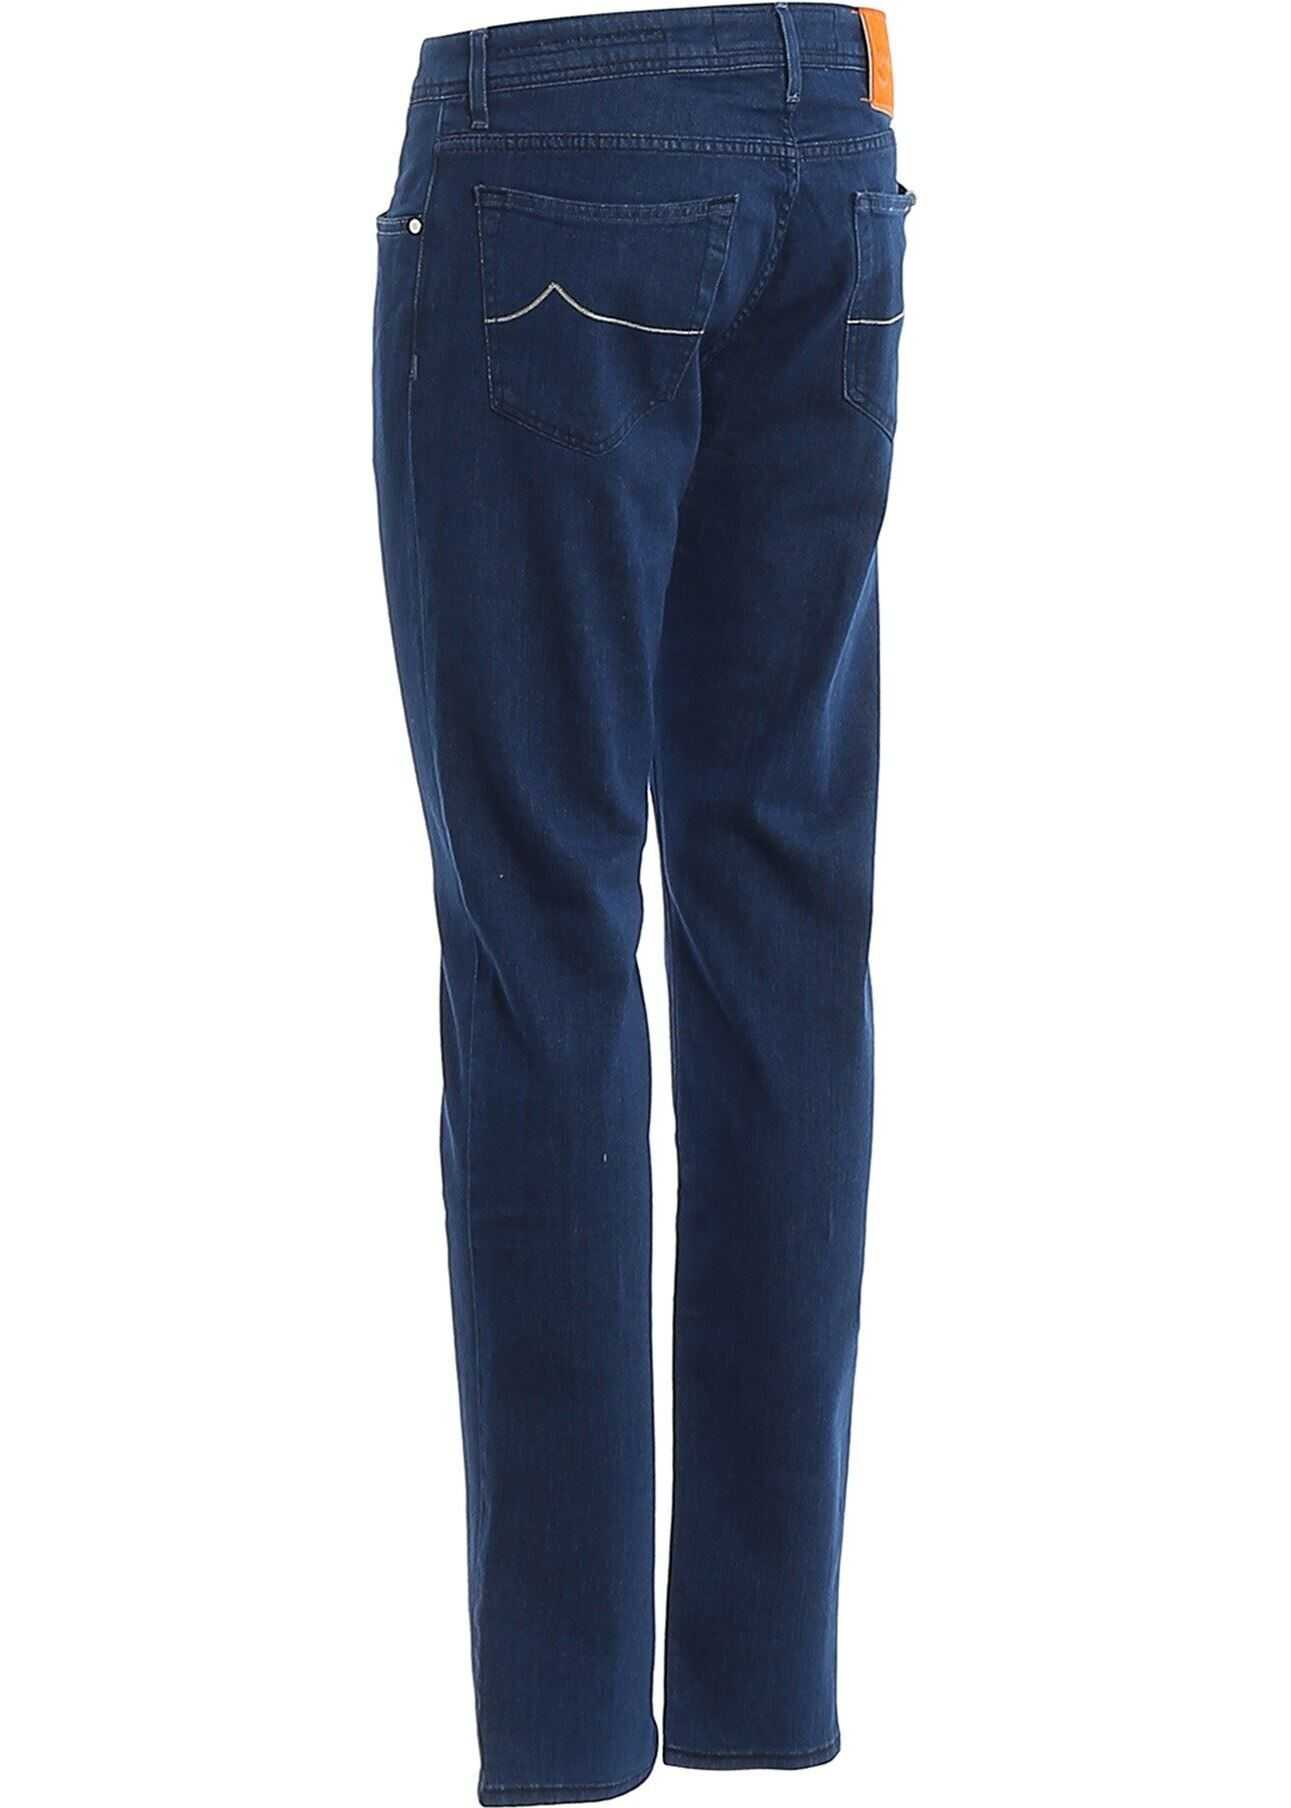 Jacob Cohen Style 622 Denim Jeans Blue imagine